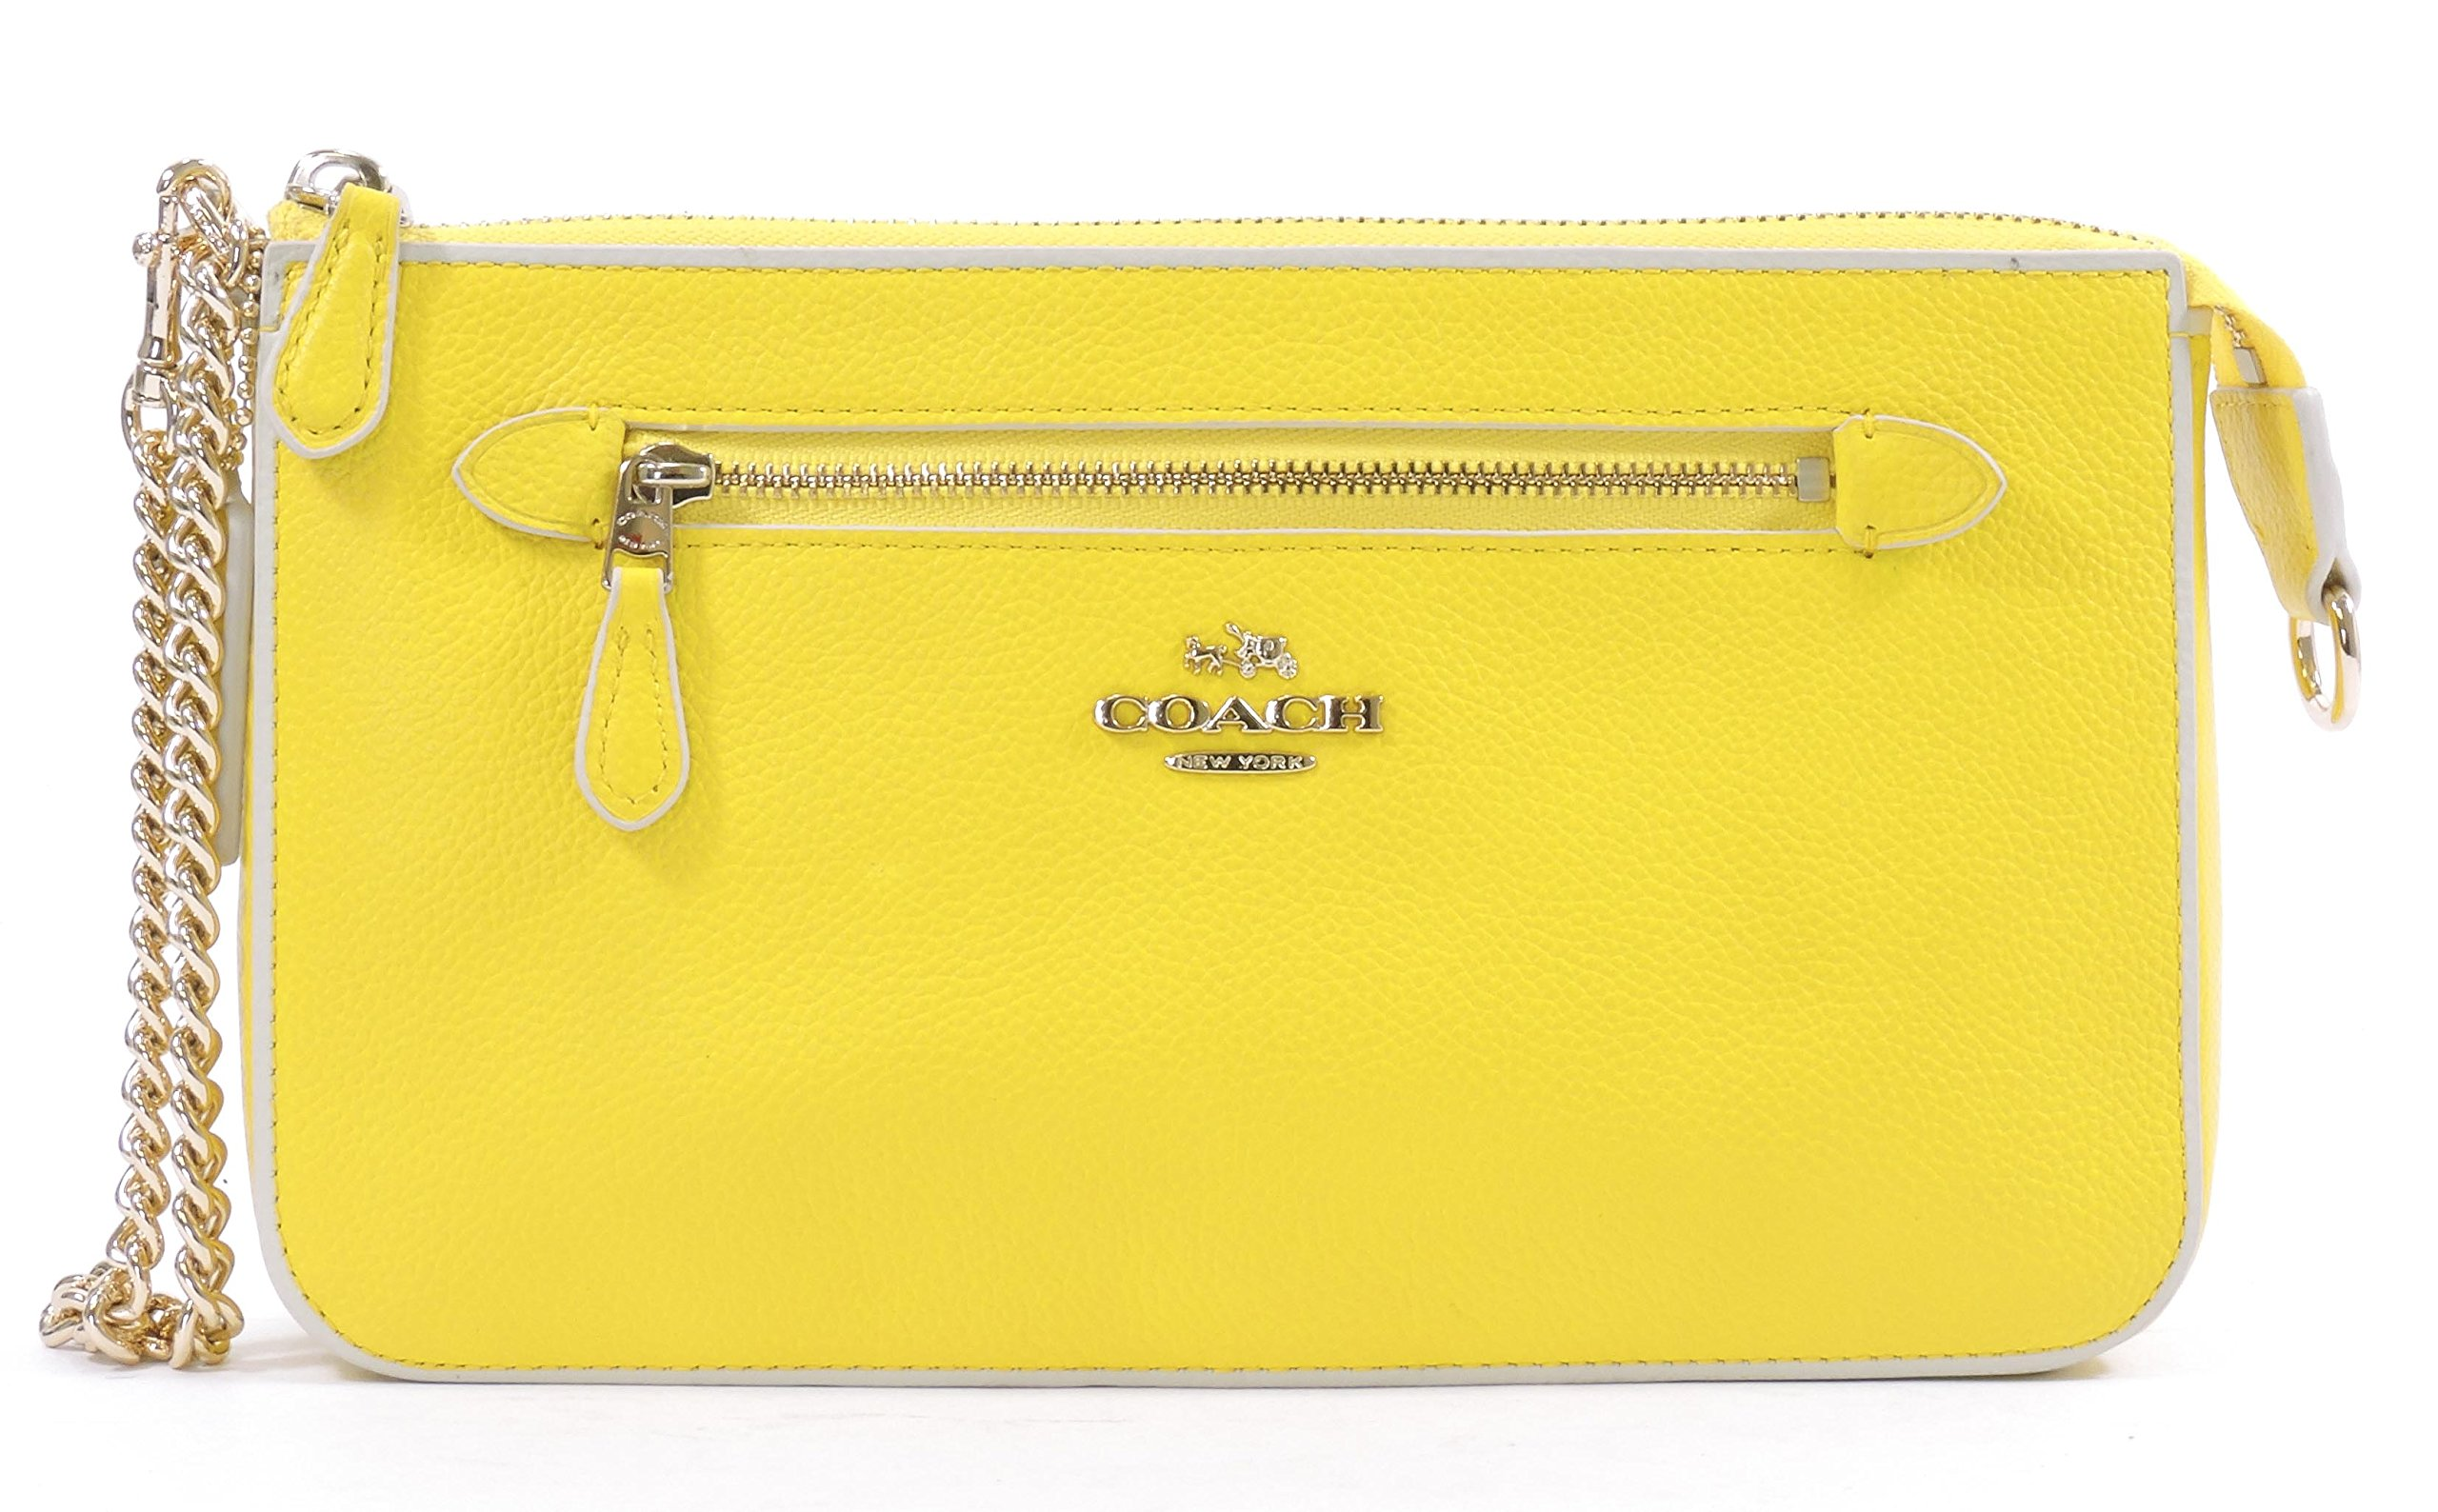 Coach Women's Yellow Chalk Nolita Wristlet 24 Colorblock Leather Wristlet Purse